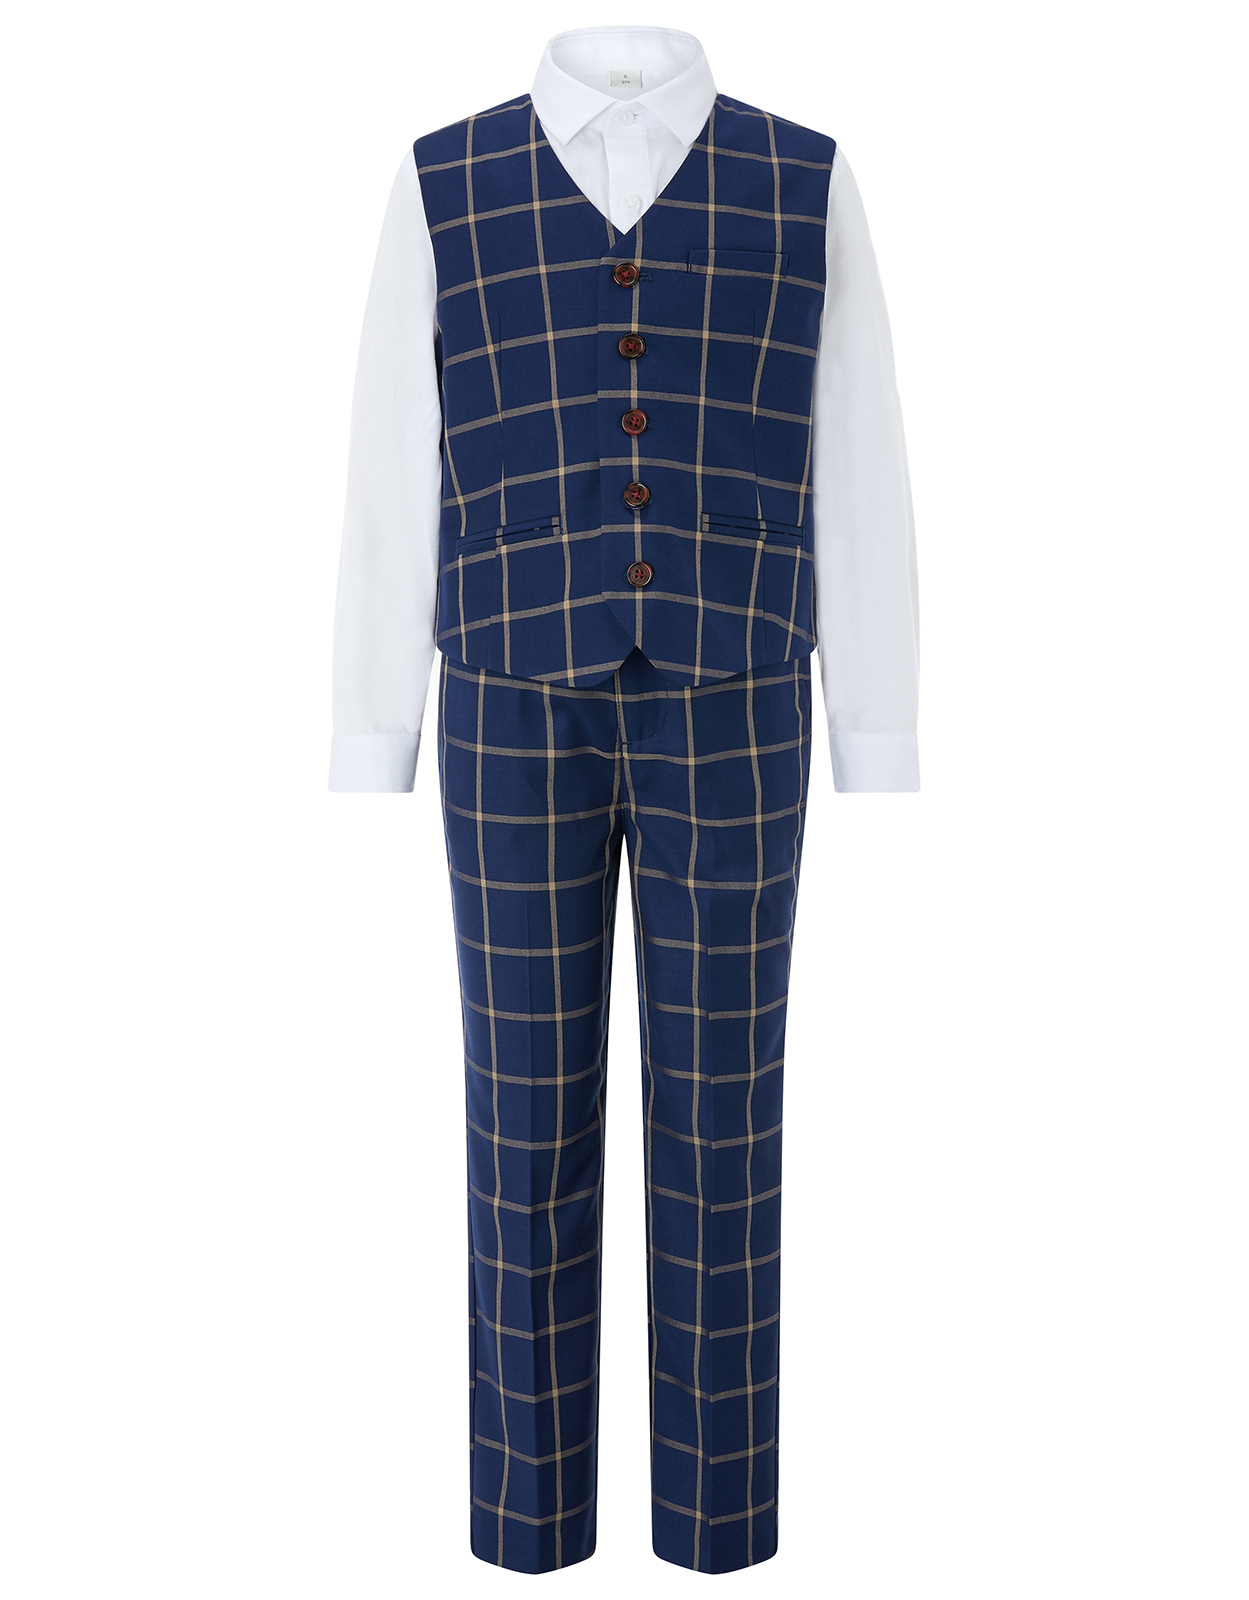 Monsoon Dustin 3PC Waistcoat Suit Set